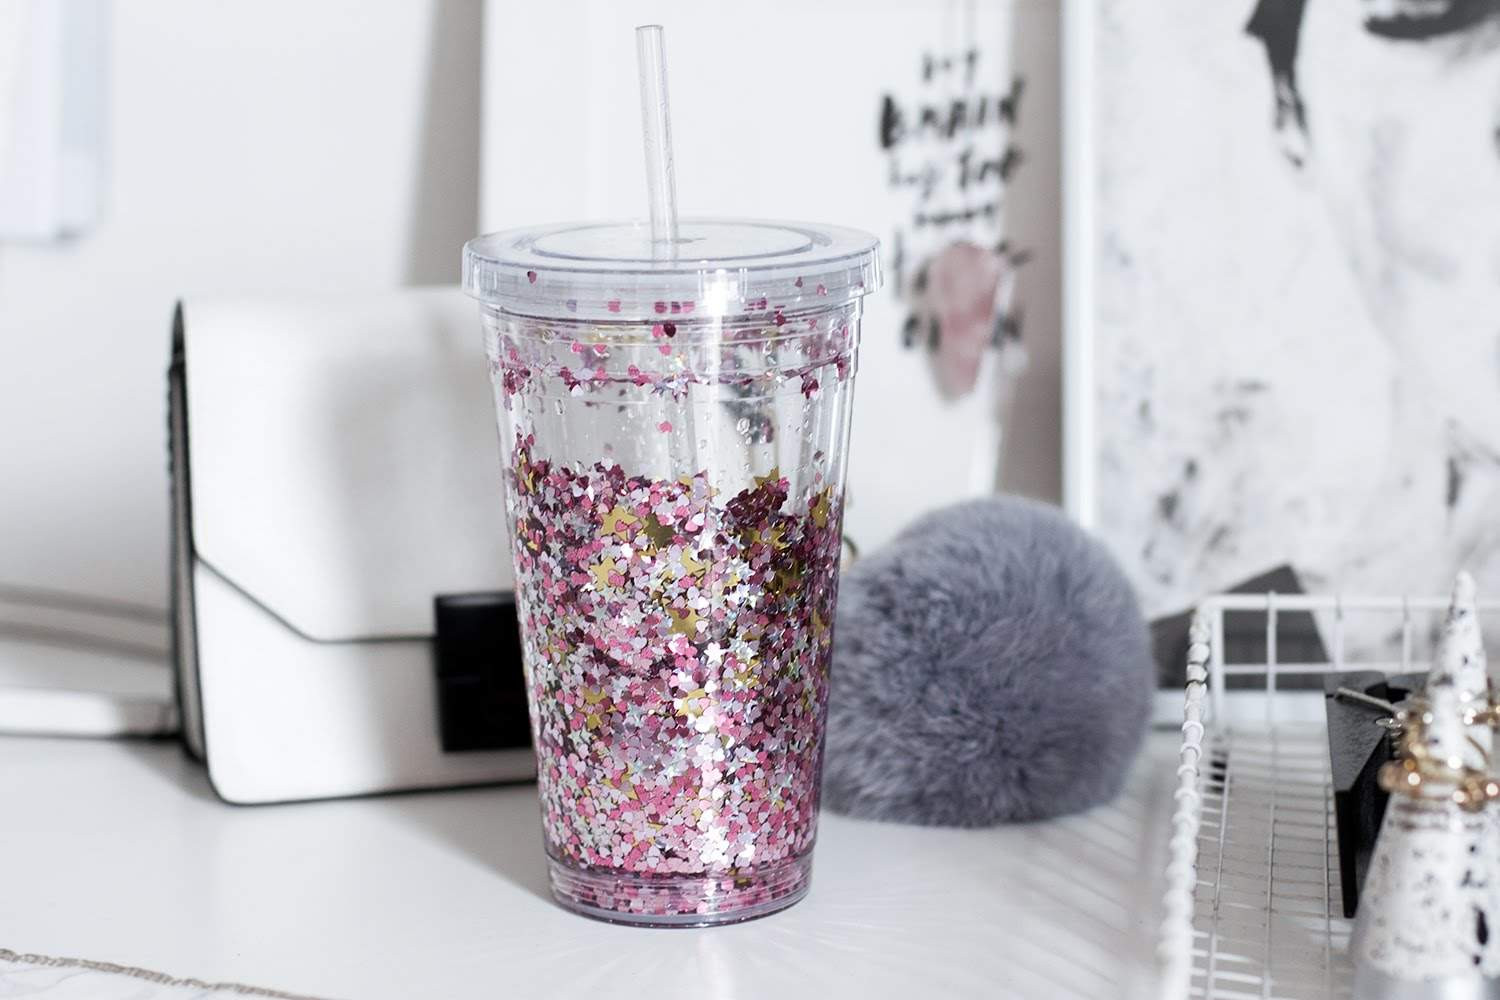 Best ideas about DIY Glitter Tumbler . Save or Pin DIY Glitter Drink Tumbler Now.